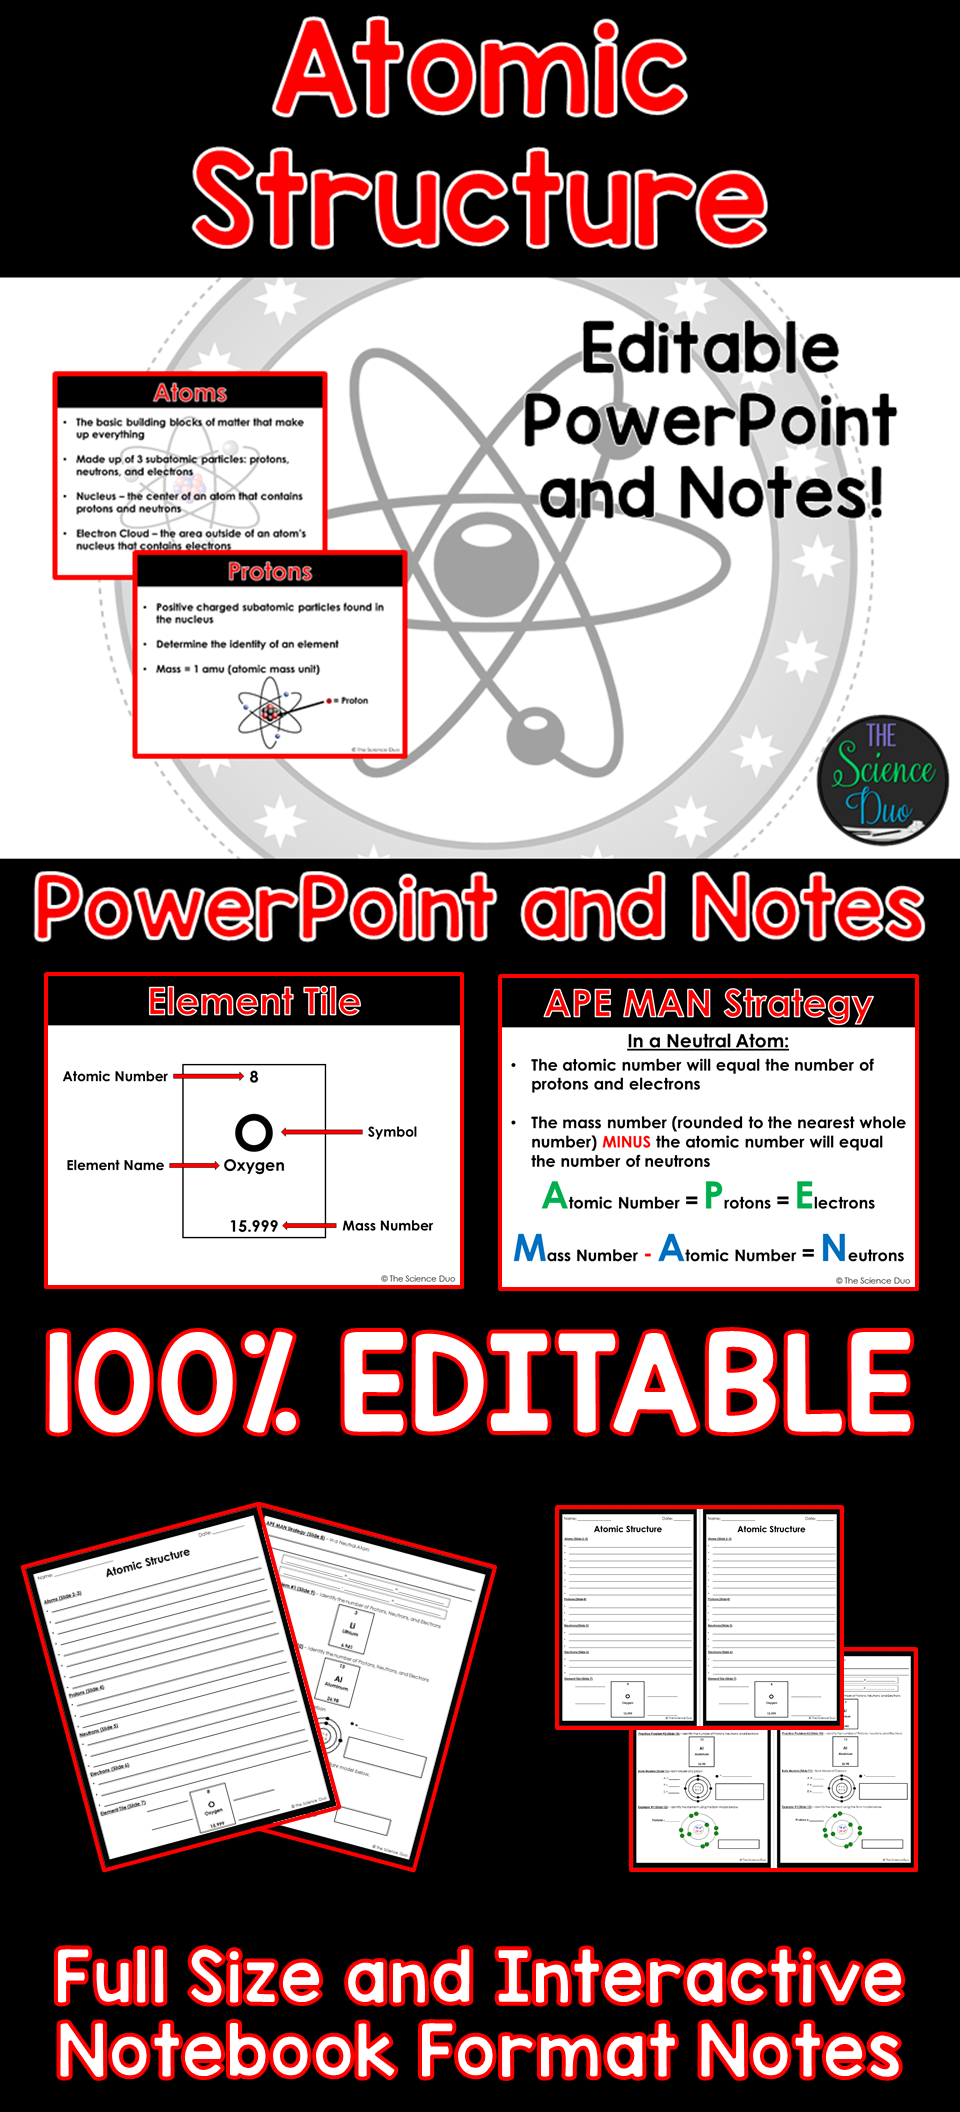 Atomic structure powerpoint and notes pinterest periodic table this presentation covers atomic structure protons electrons neutrons periodic table element tiles and bohr models this resource includes a 19 slide urtaz Image collections